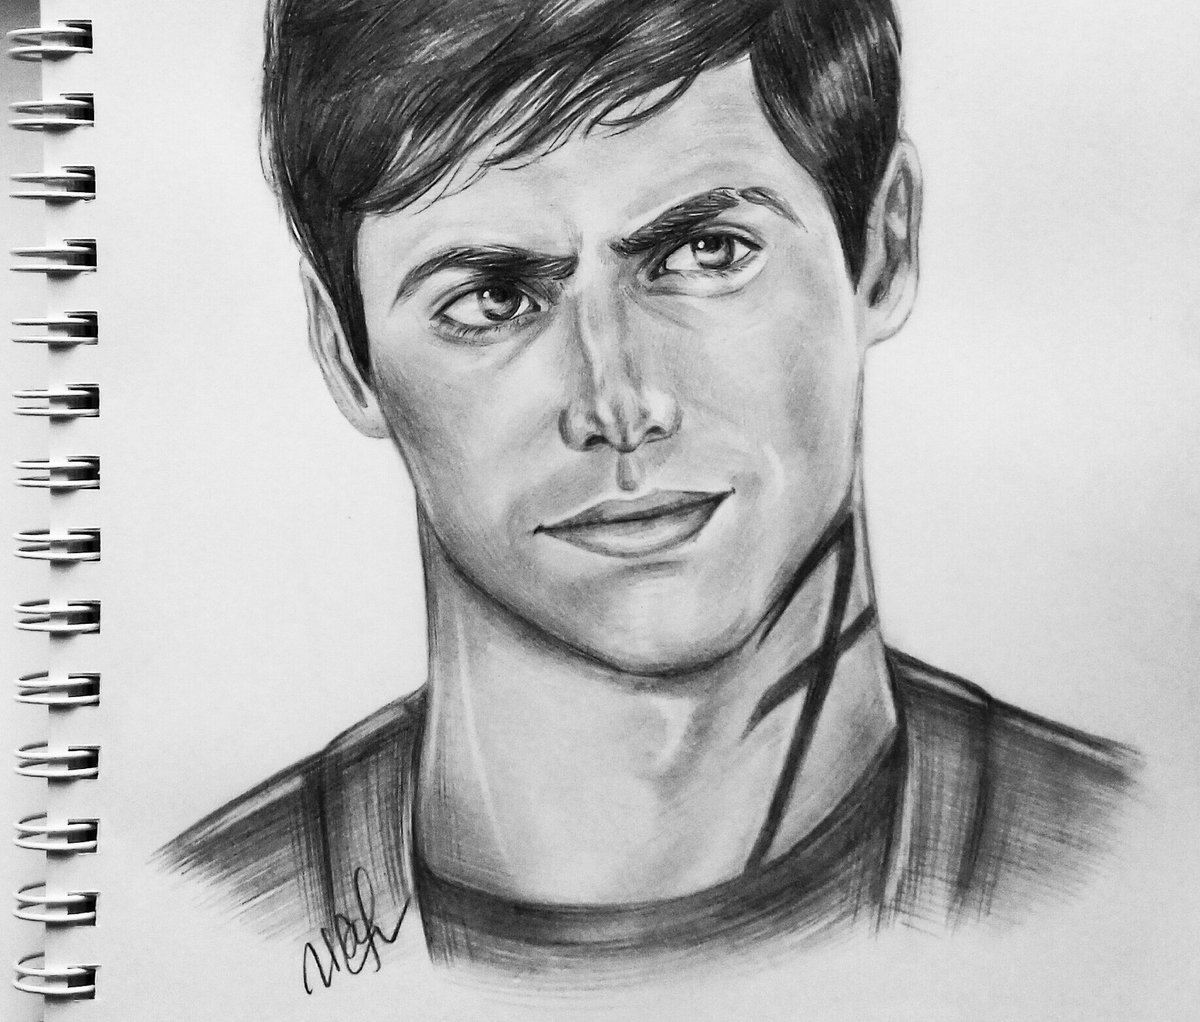 Finally done! @MatthewDaddario PLEASE, LOOK AT THIS I TRIED VERY HARD (Please, tag Matt) #AlecLightwood #Shadowhunters #portrait #sketch<br>http://pic.twitter.com/PSGEkZ8ld7